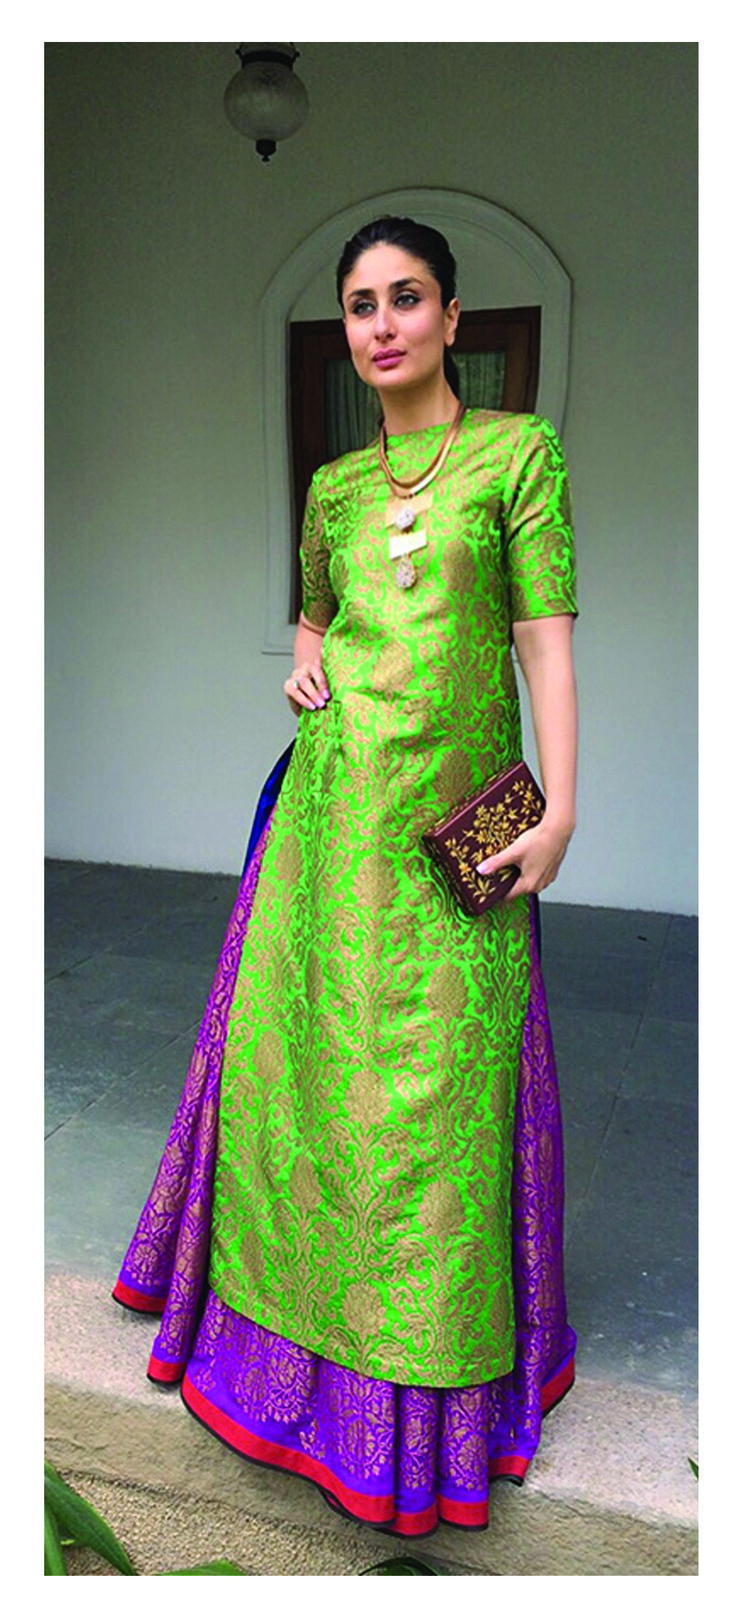 Kareena Kapoor Khan in payalkhandwala Brocade Kurta and Brocade Lehenga